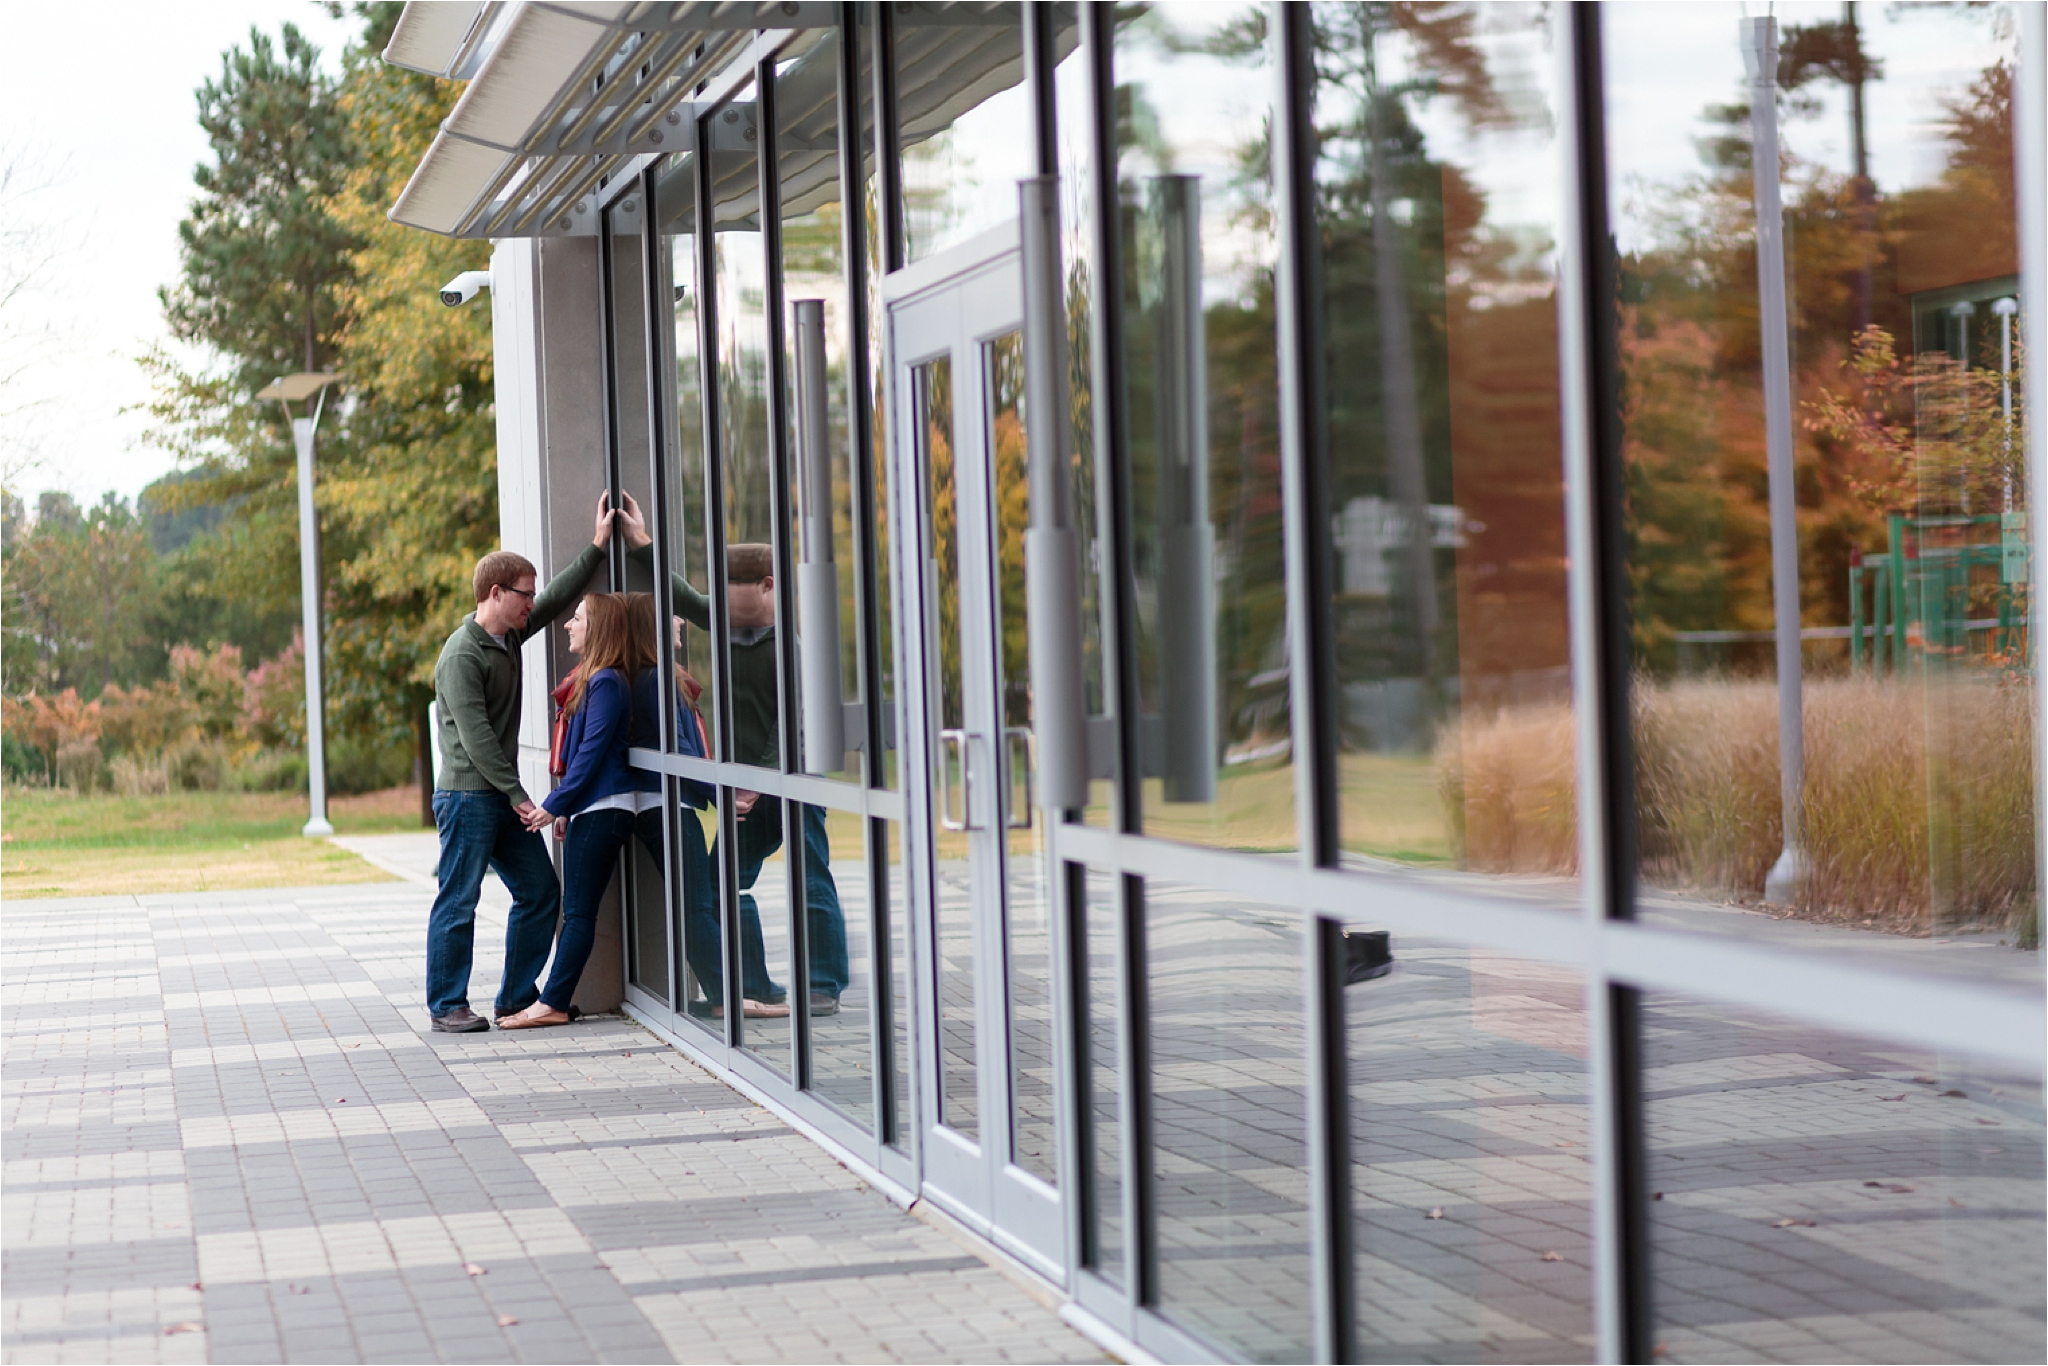 greenville-engagement-session-fall-colors-3_blog.jpg